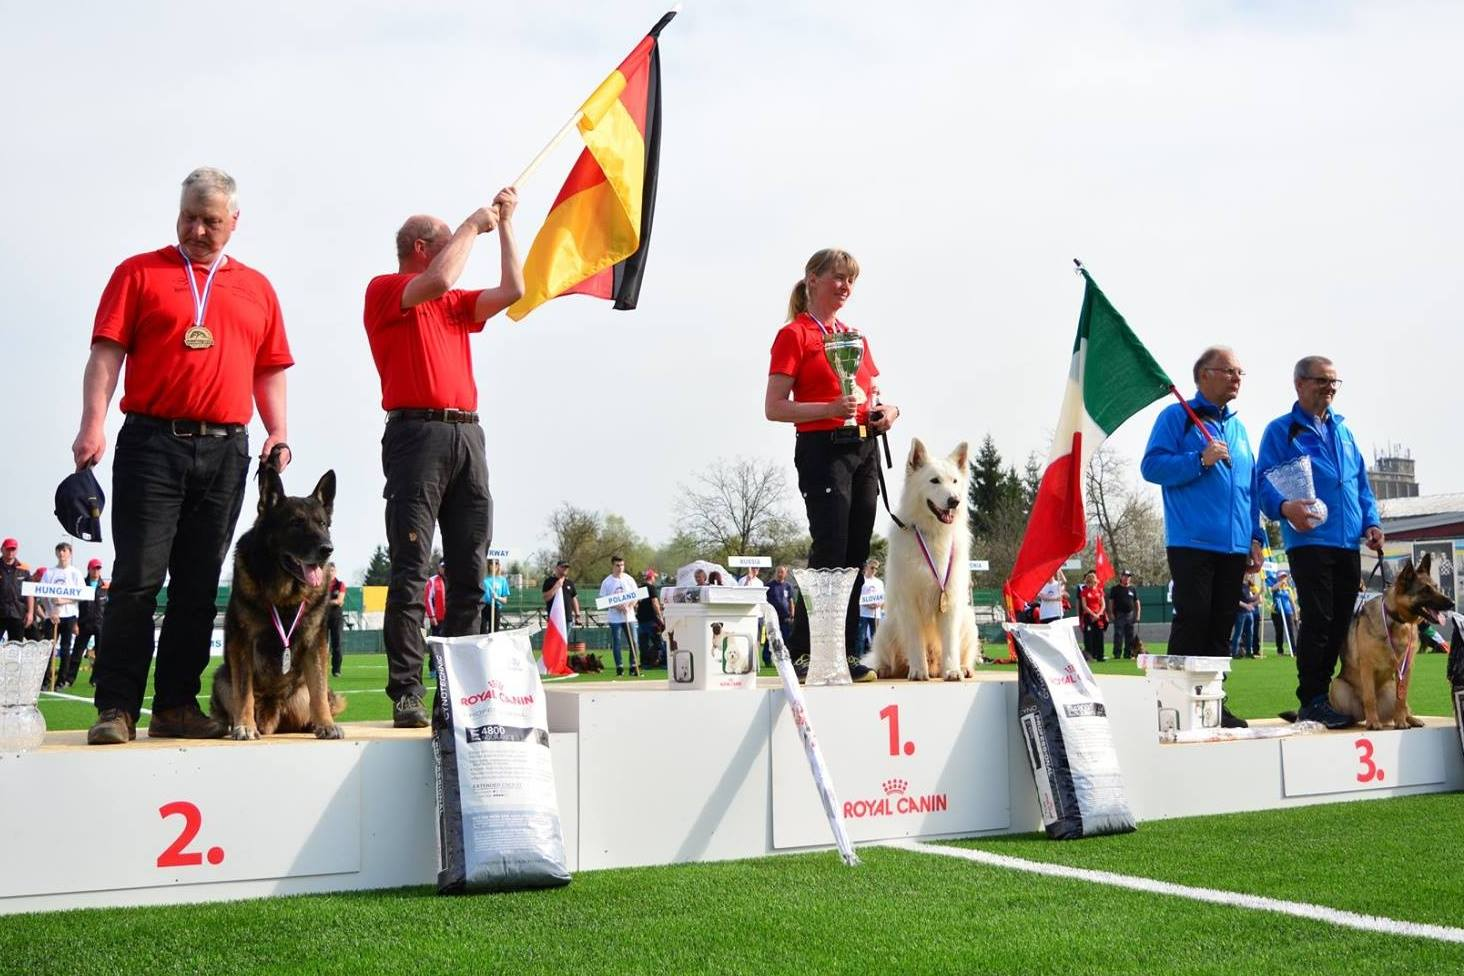 Congratulations Grit Oberländer who won IPO-FH World Championship 2018 with a White Shepherd! 45